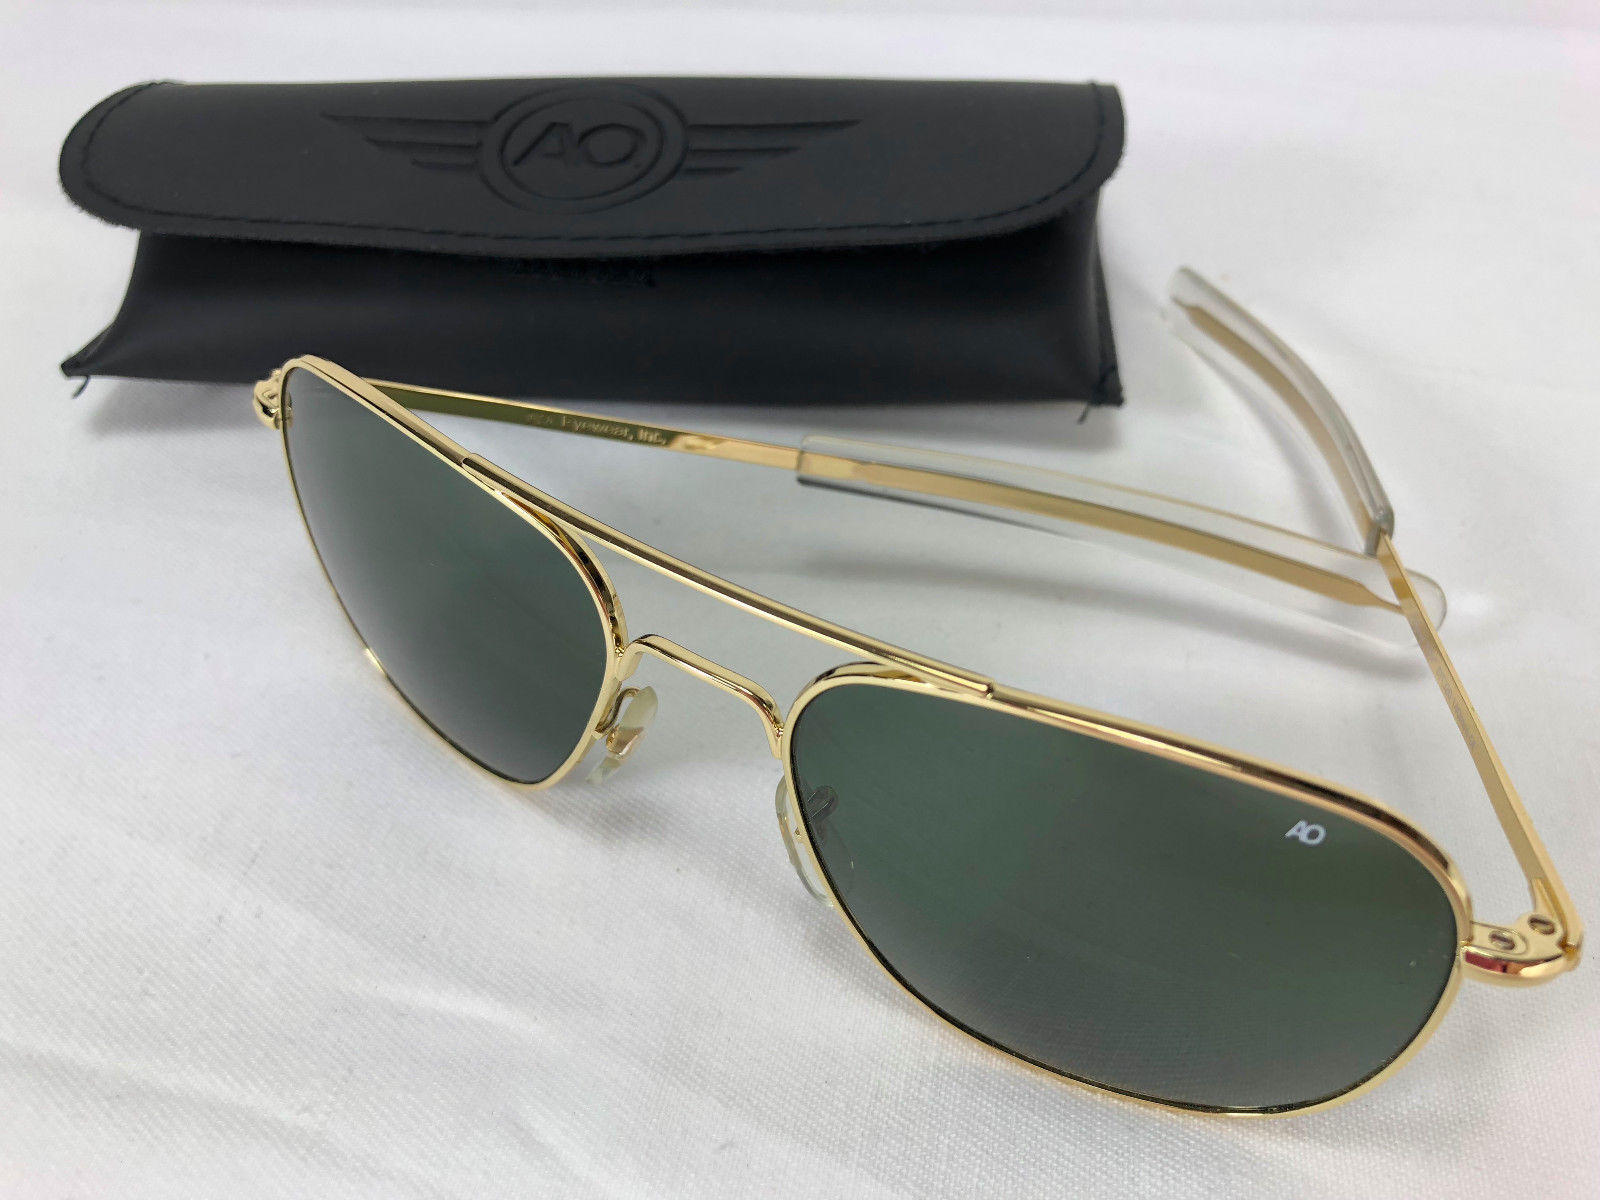 1d50f7fca9f S l1600. S l1600. AO Original Pilot 57mm Gold Frame with Bayonet Temples   True  Color Green Glass. Free Shipping